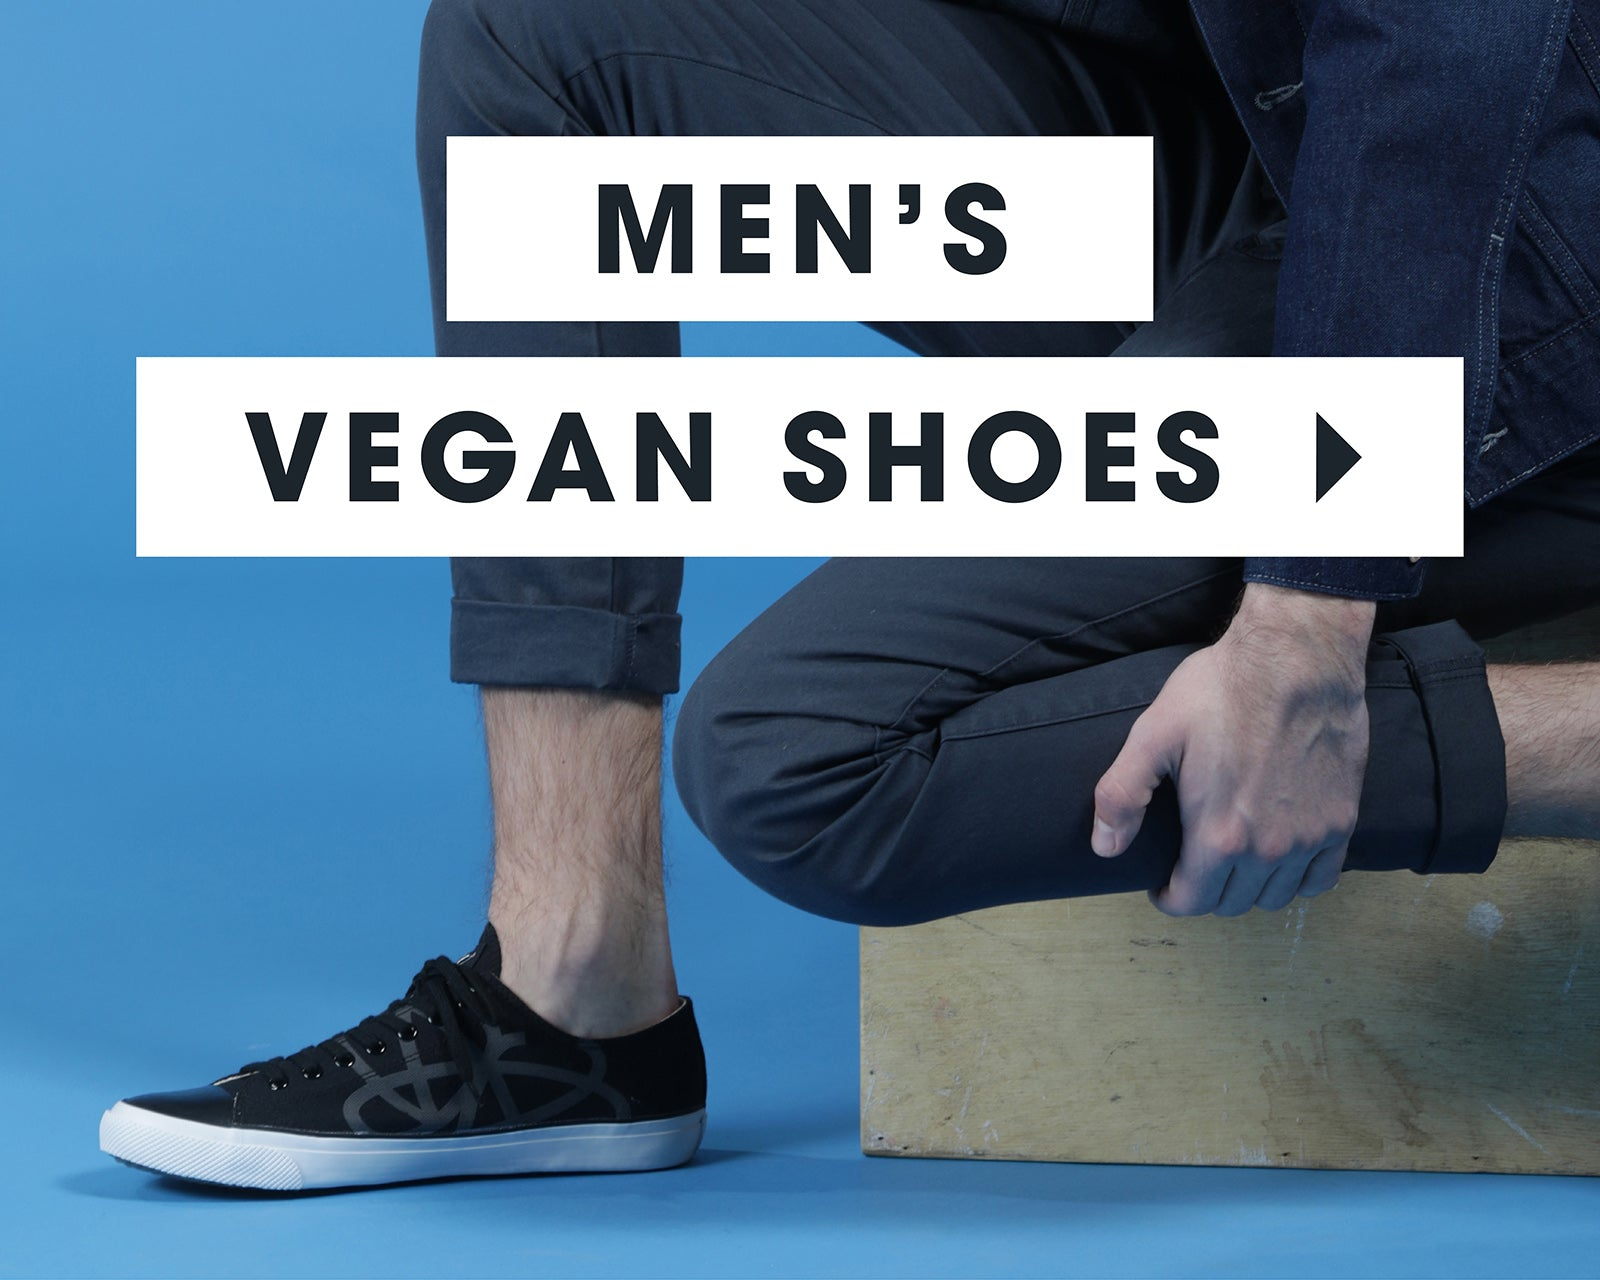 men's vegan shoes po-zu